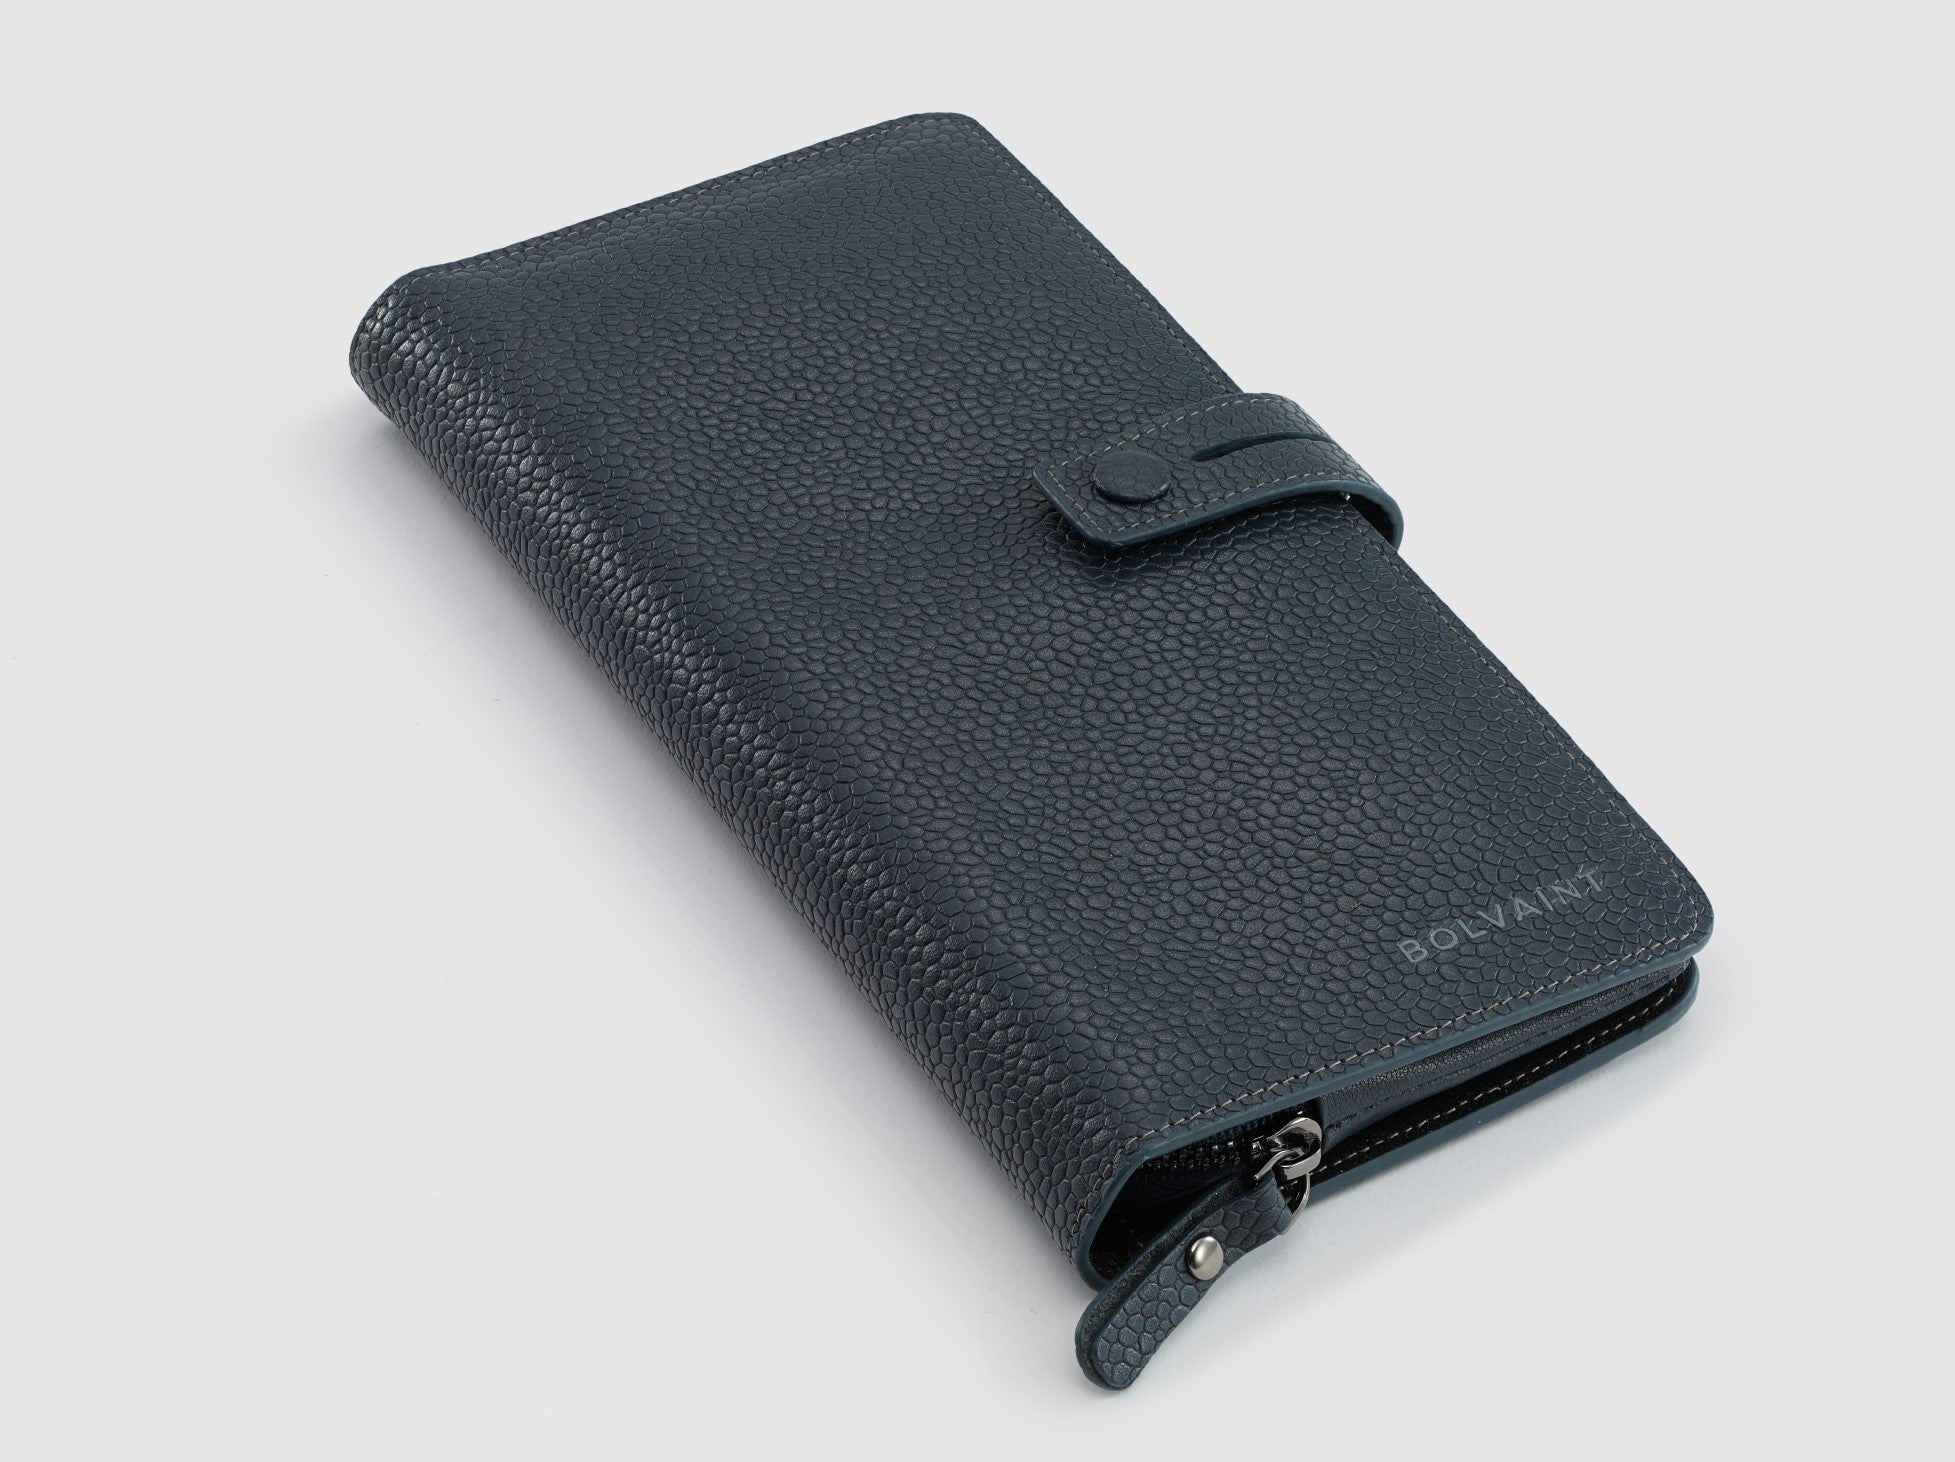 The Thio Travel Wallet